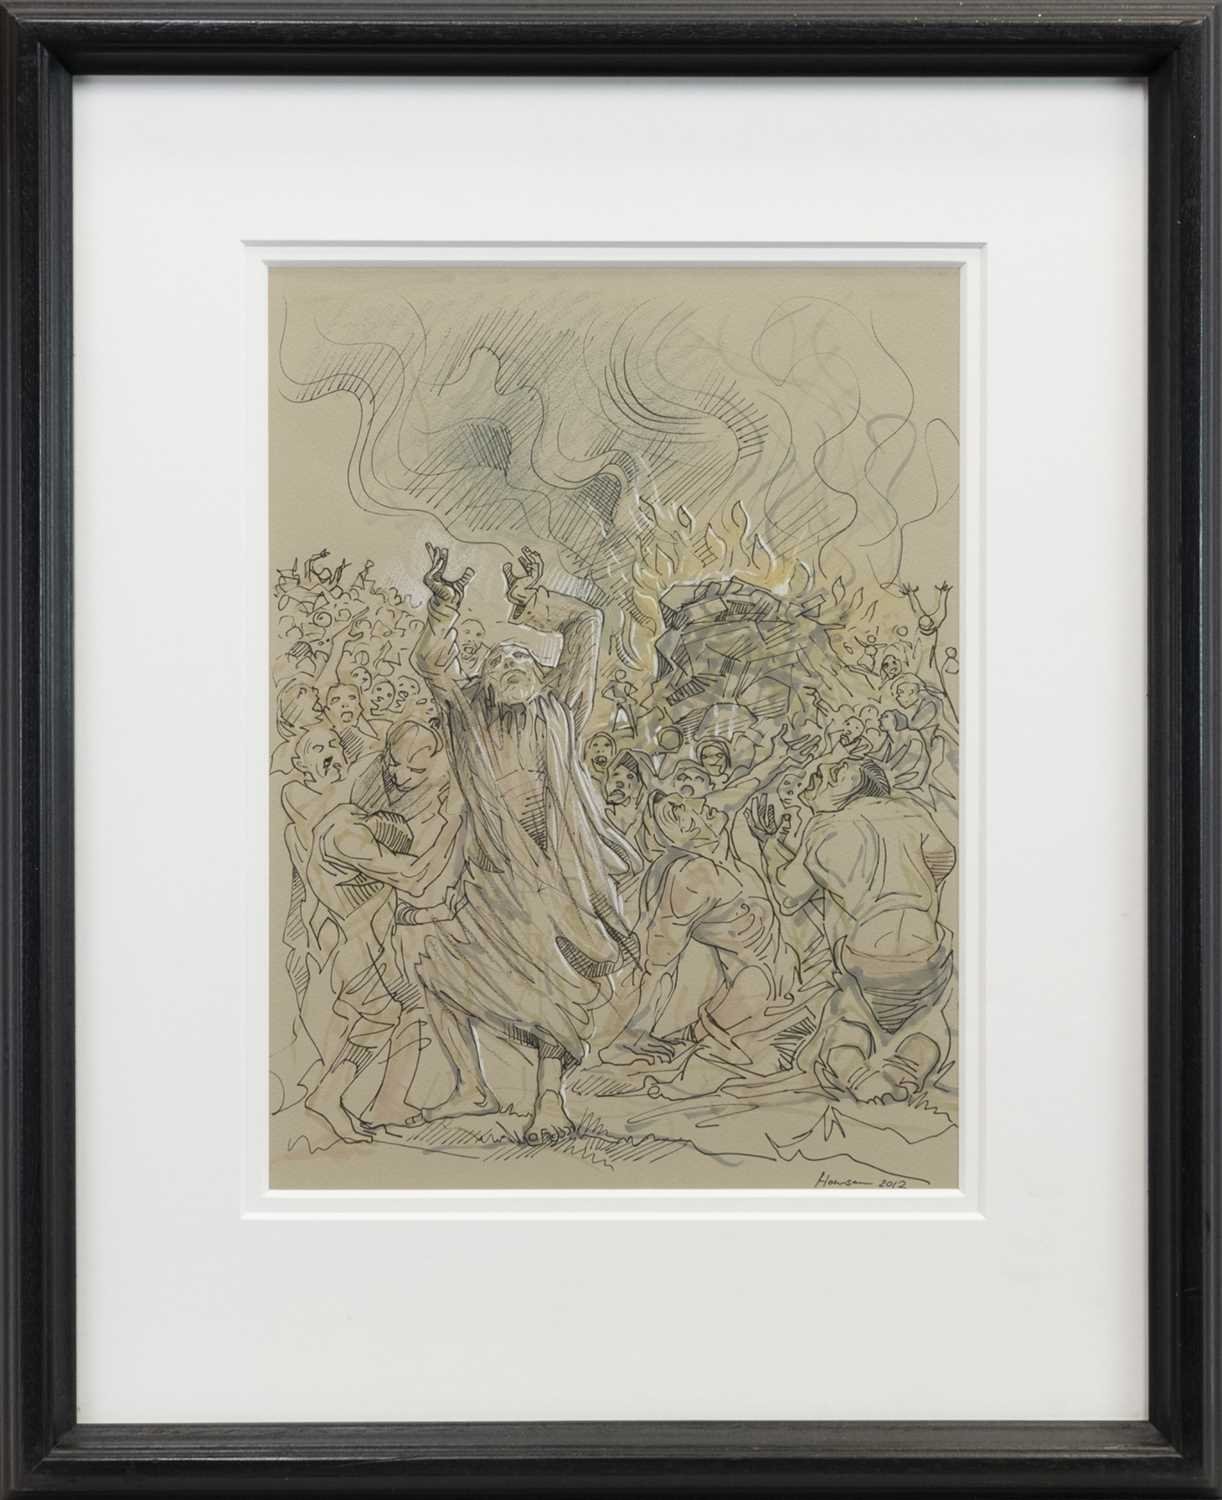 Lot 522-MOSES AND THE BURNING BUSH, A MIXED MEDIA BY PETER HOWSON